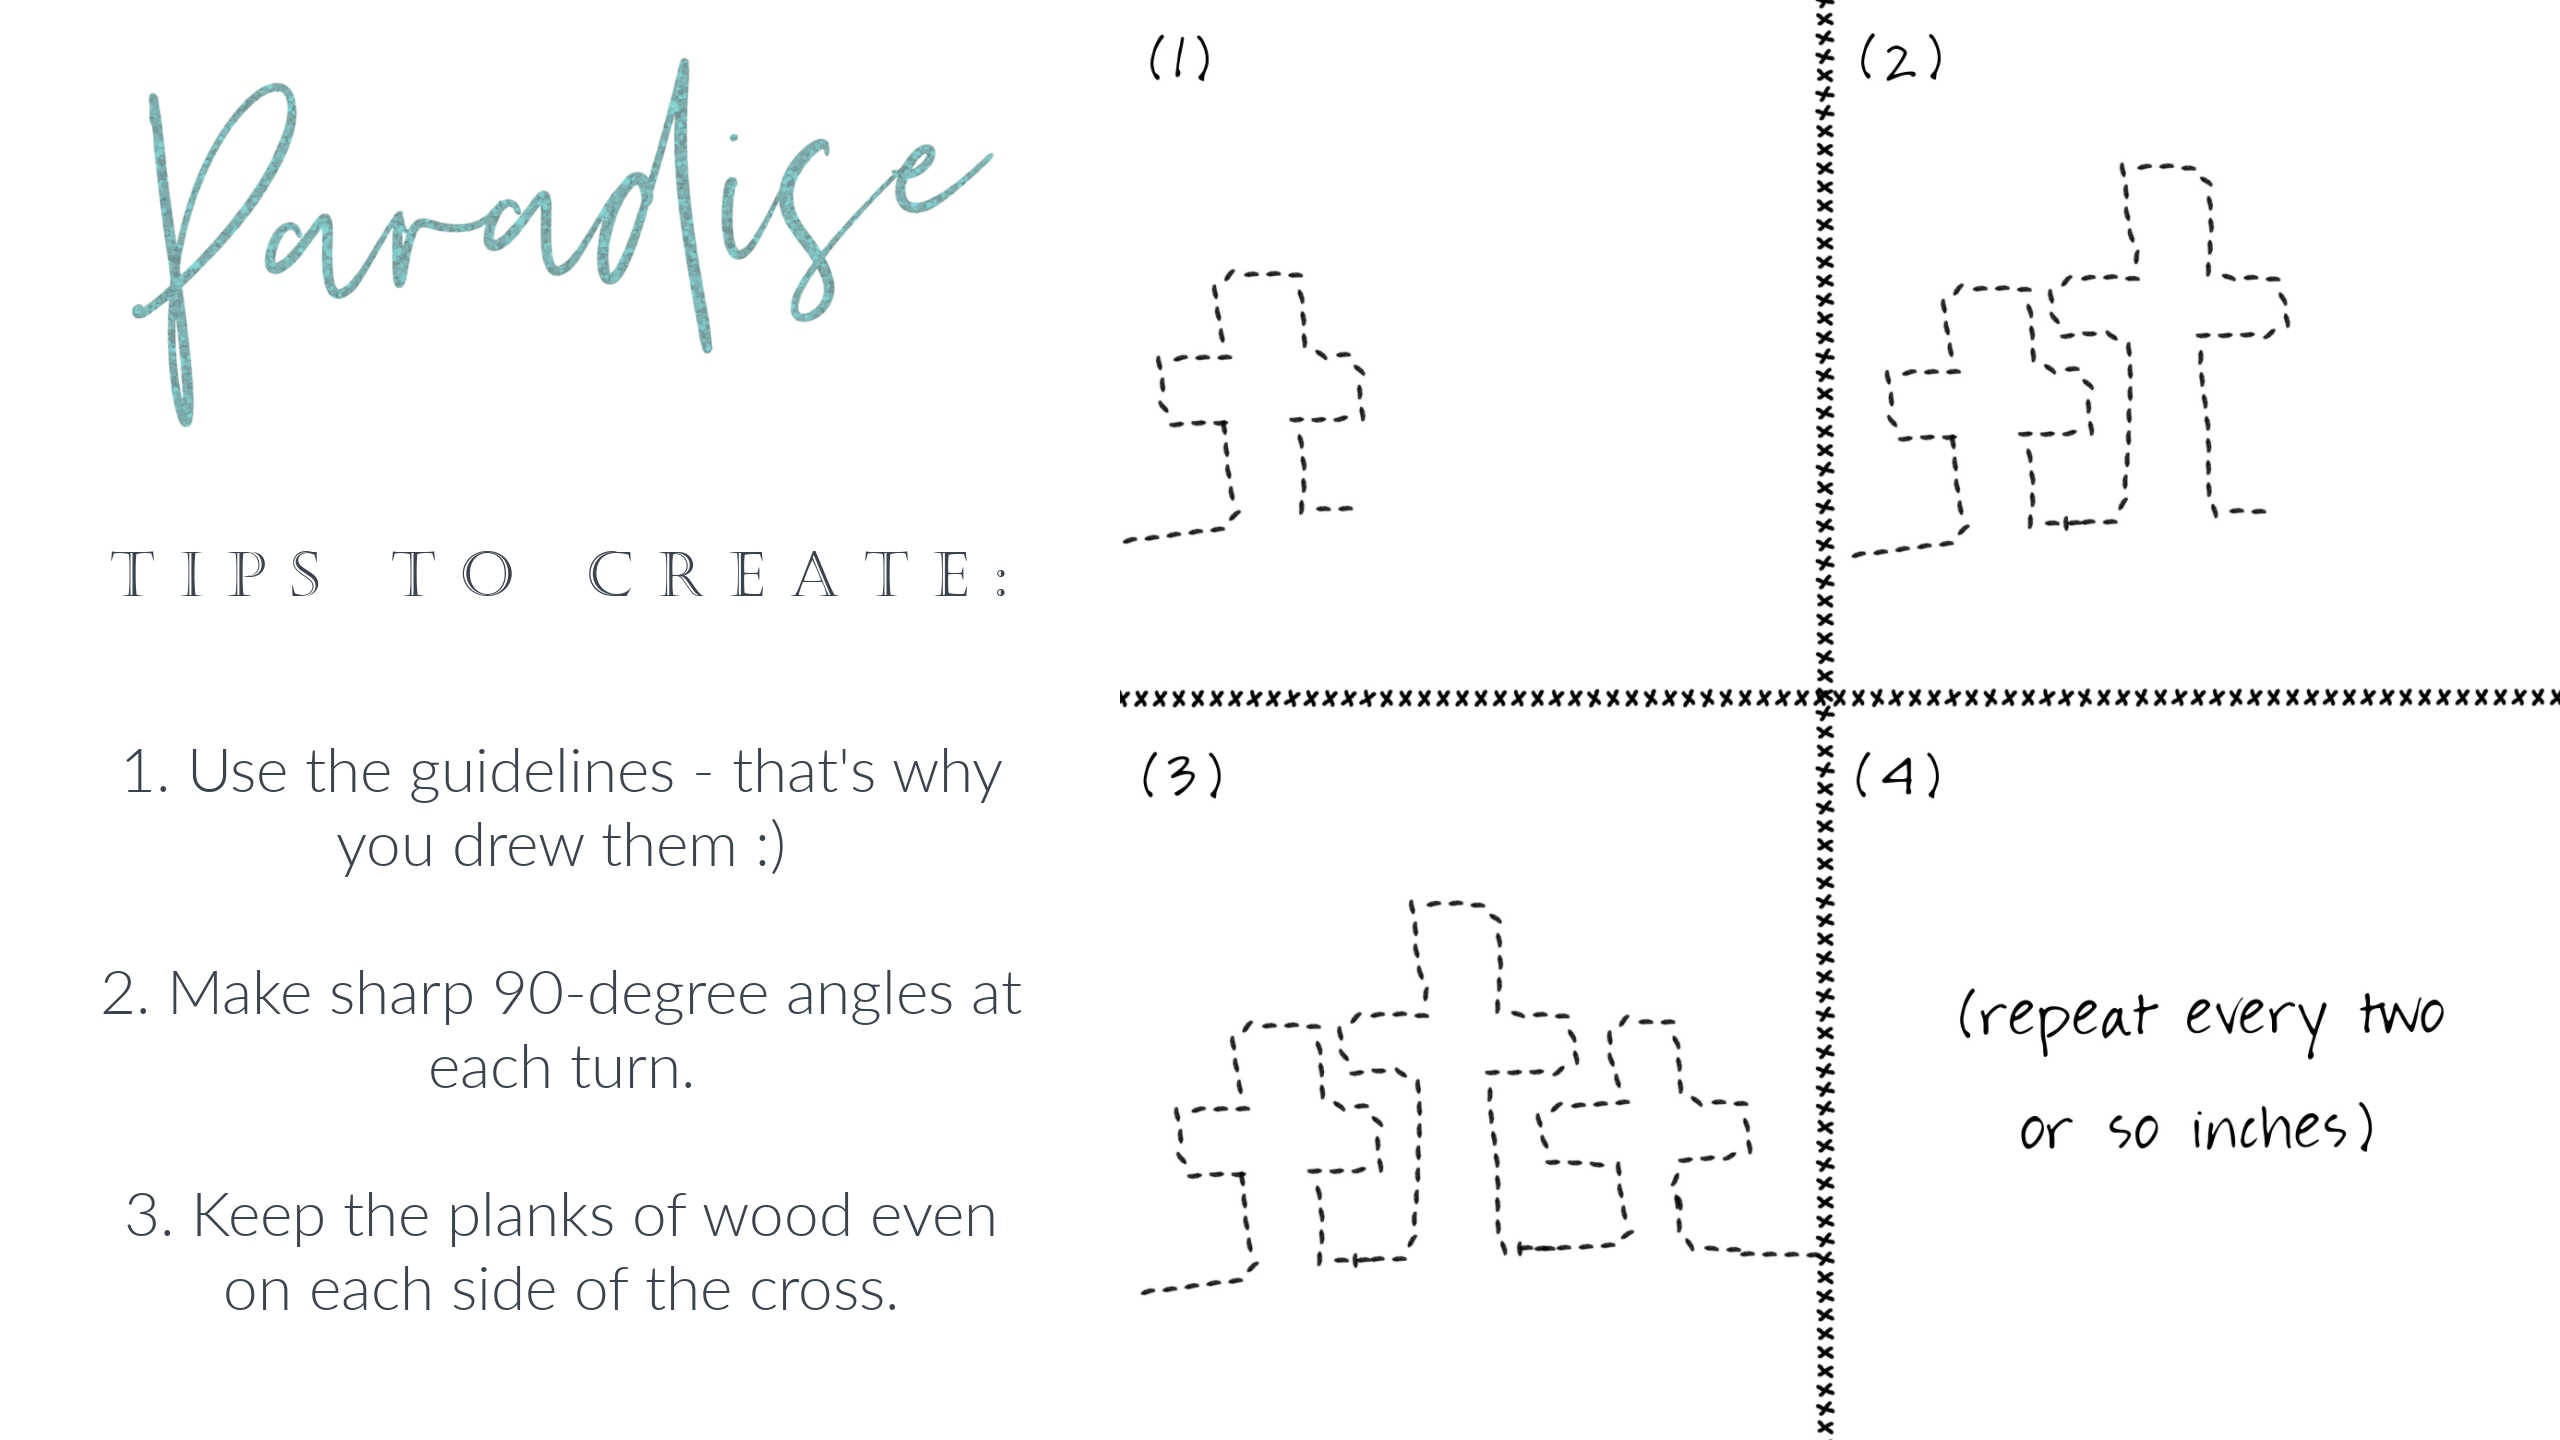 Create a free motion quilt design of the most iconic Christian image: the cross. This basic three cross free motion quilt design would be beautiful in wide quilt borders in a contrasting thread!